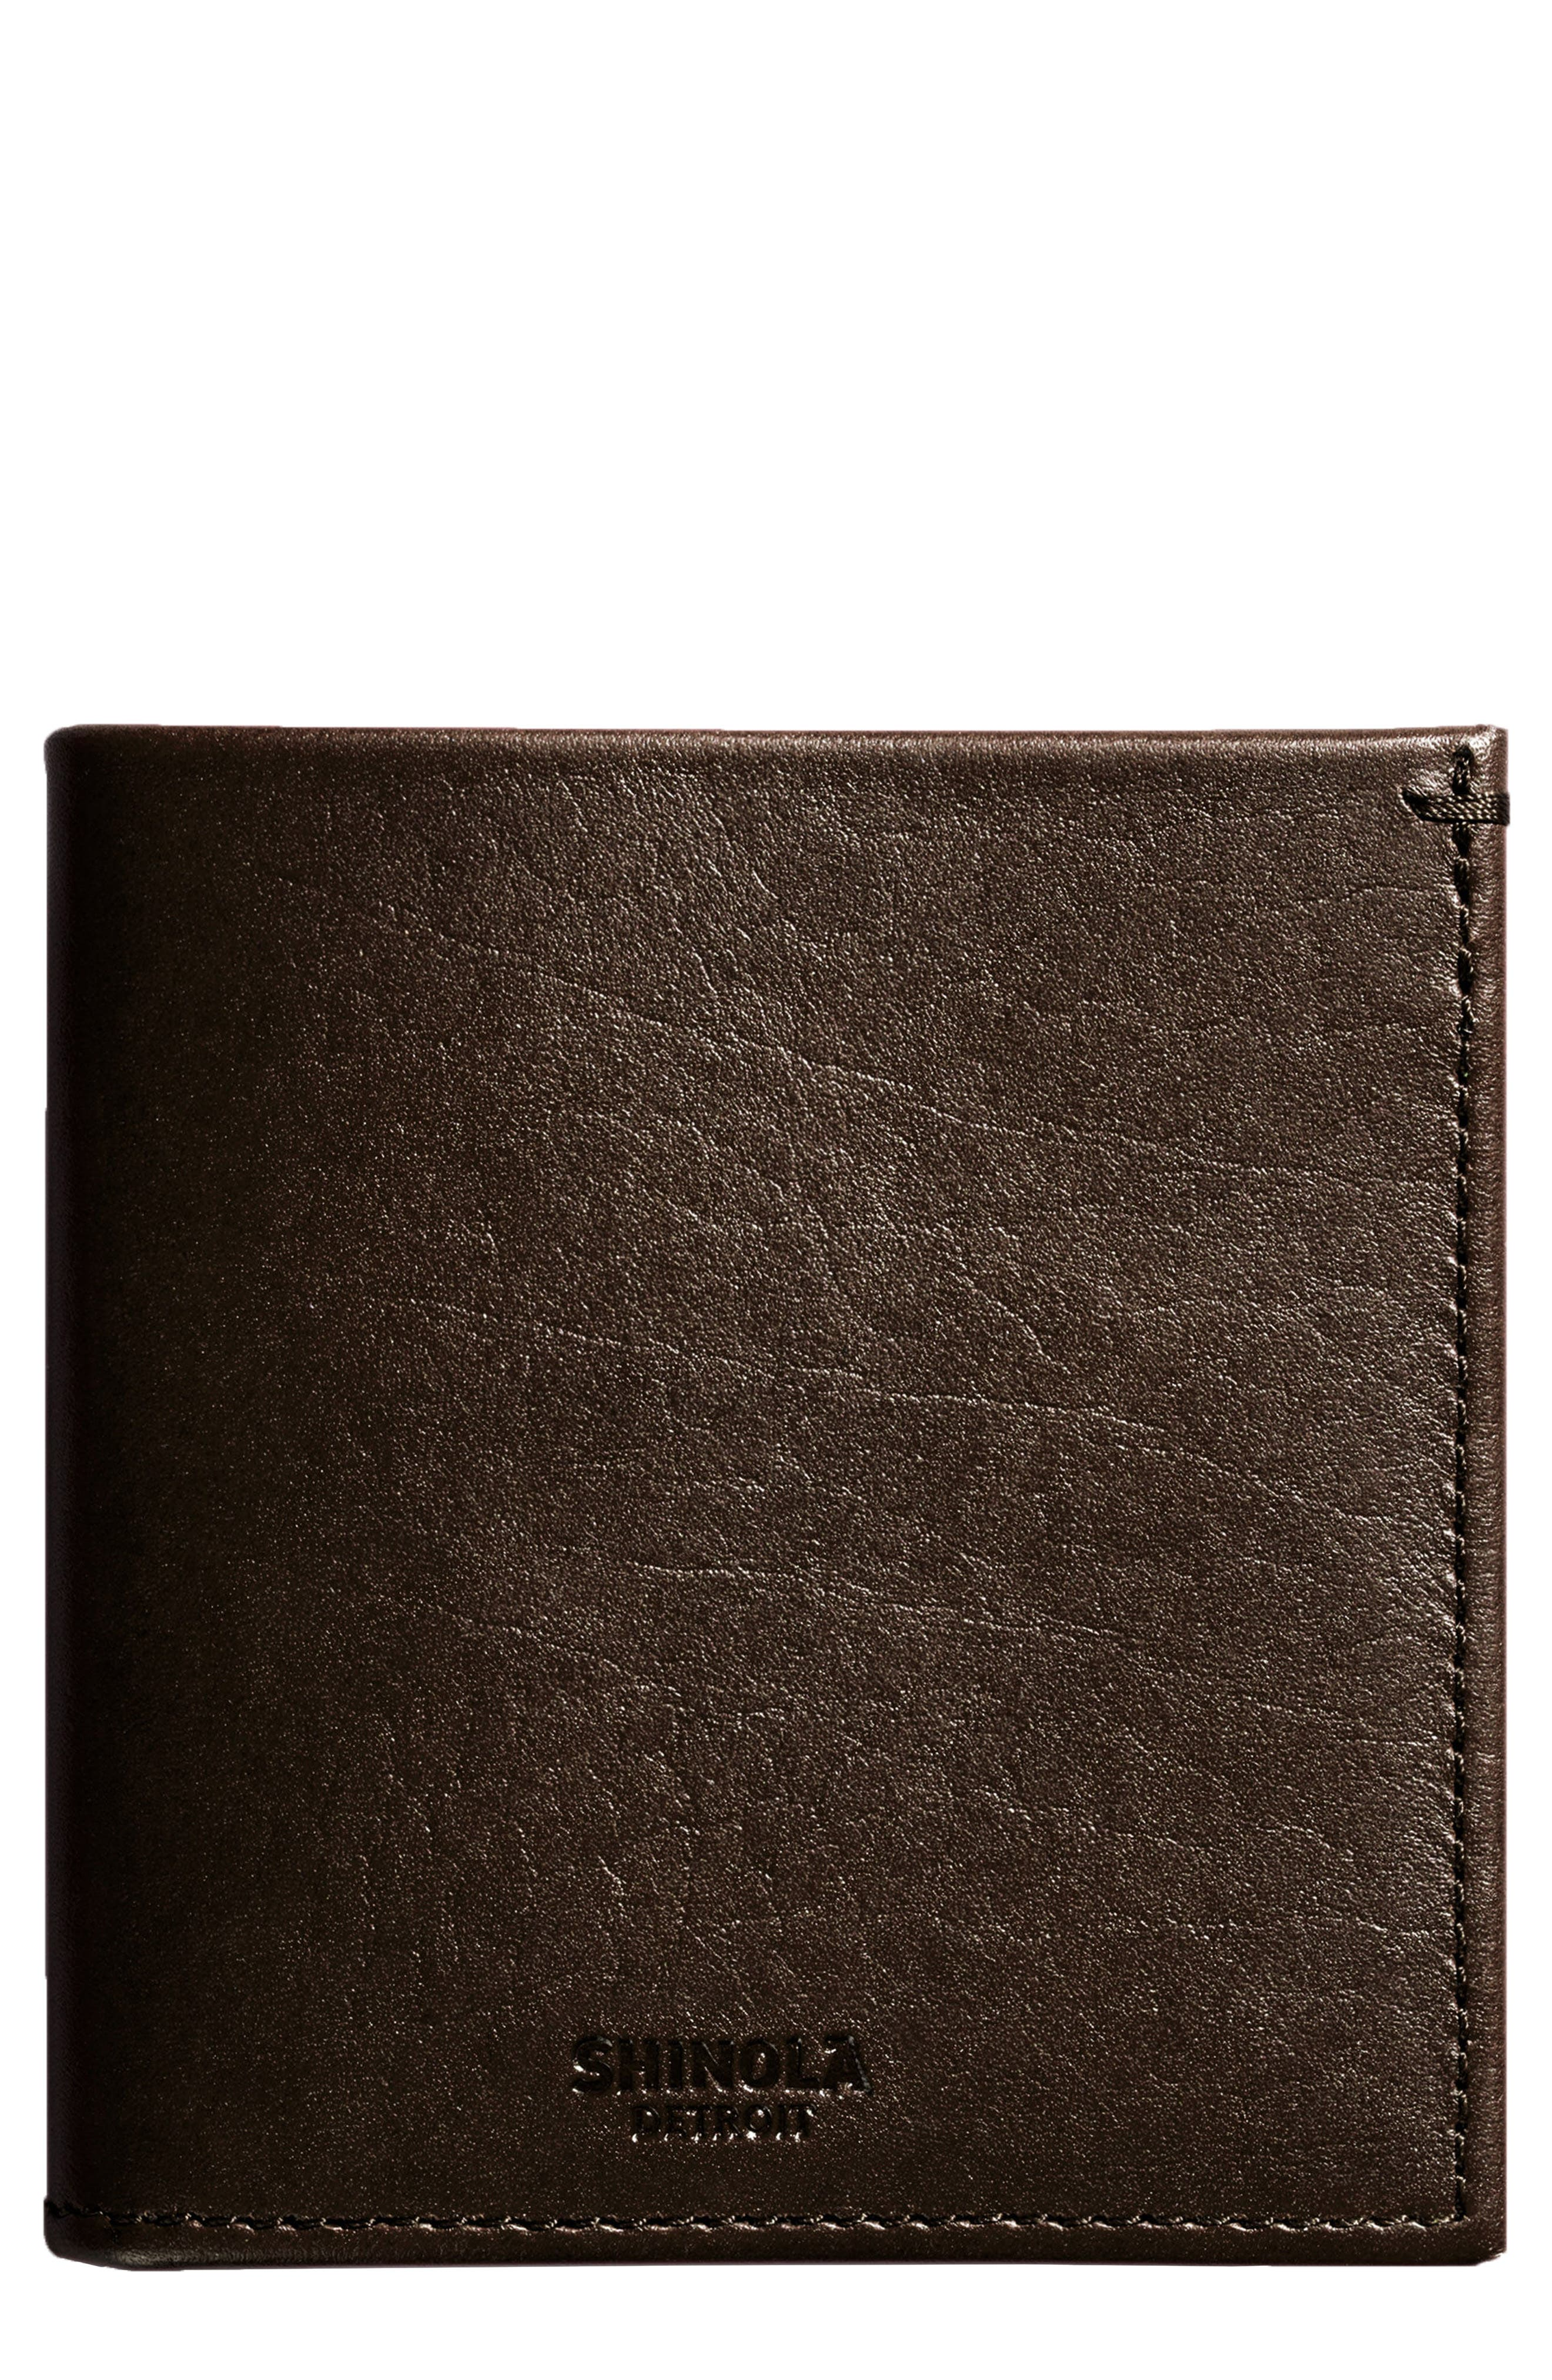 Shinola Square Bifold Leather Wallet